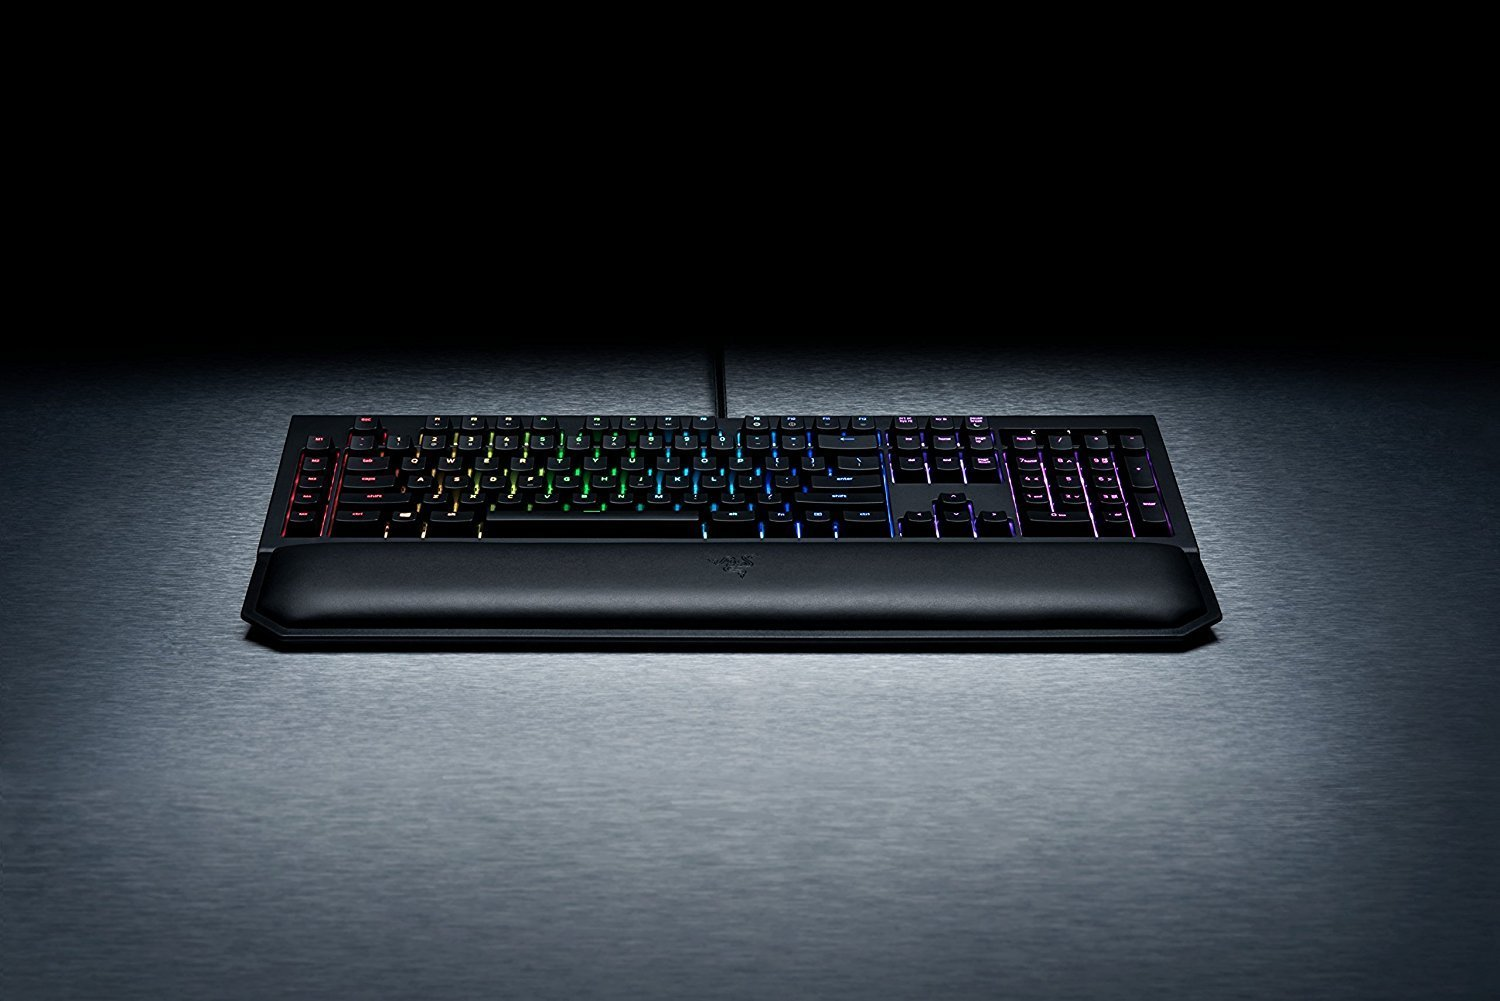 Razer Blackwidow Review - Fully Tested For Gaming